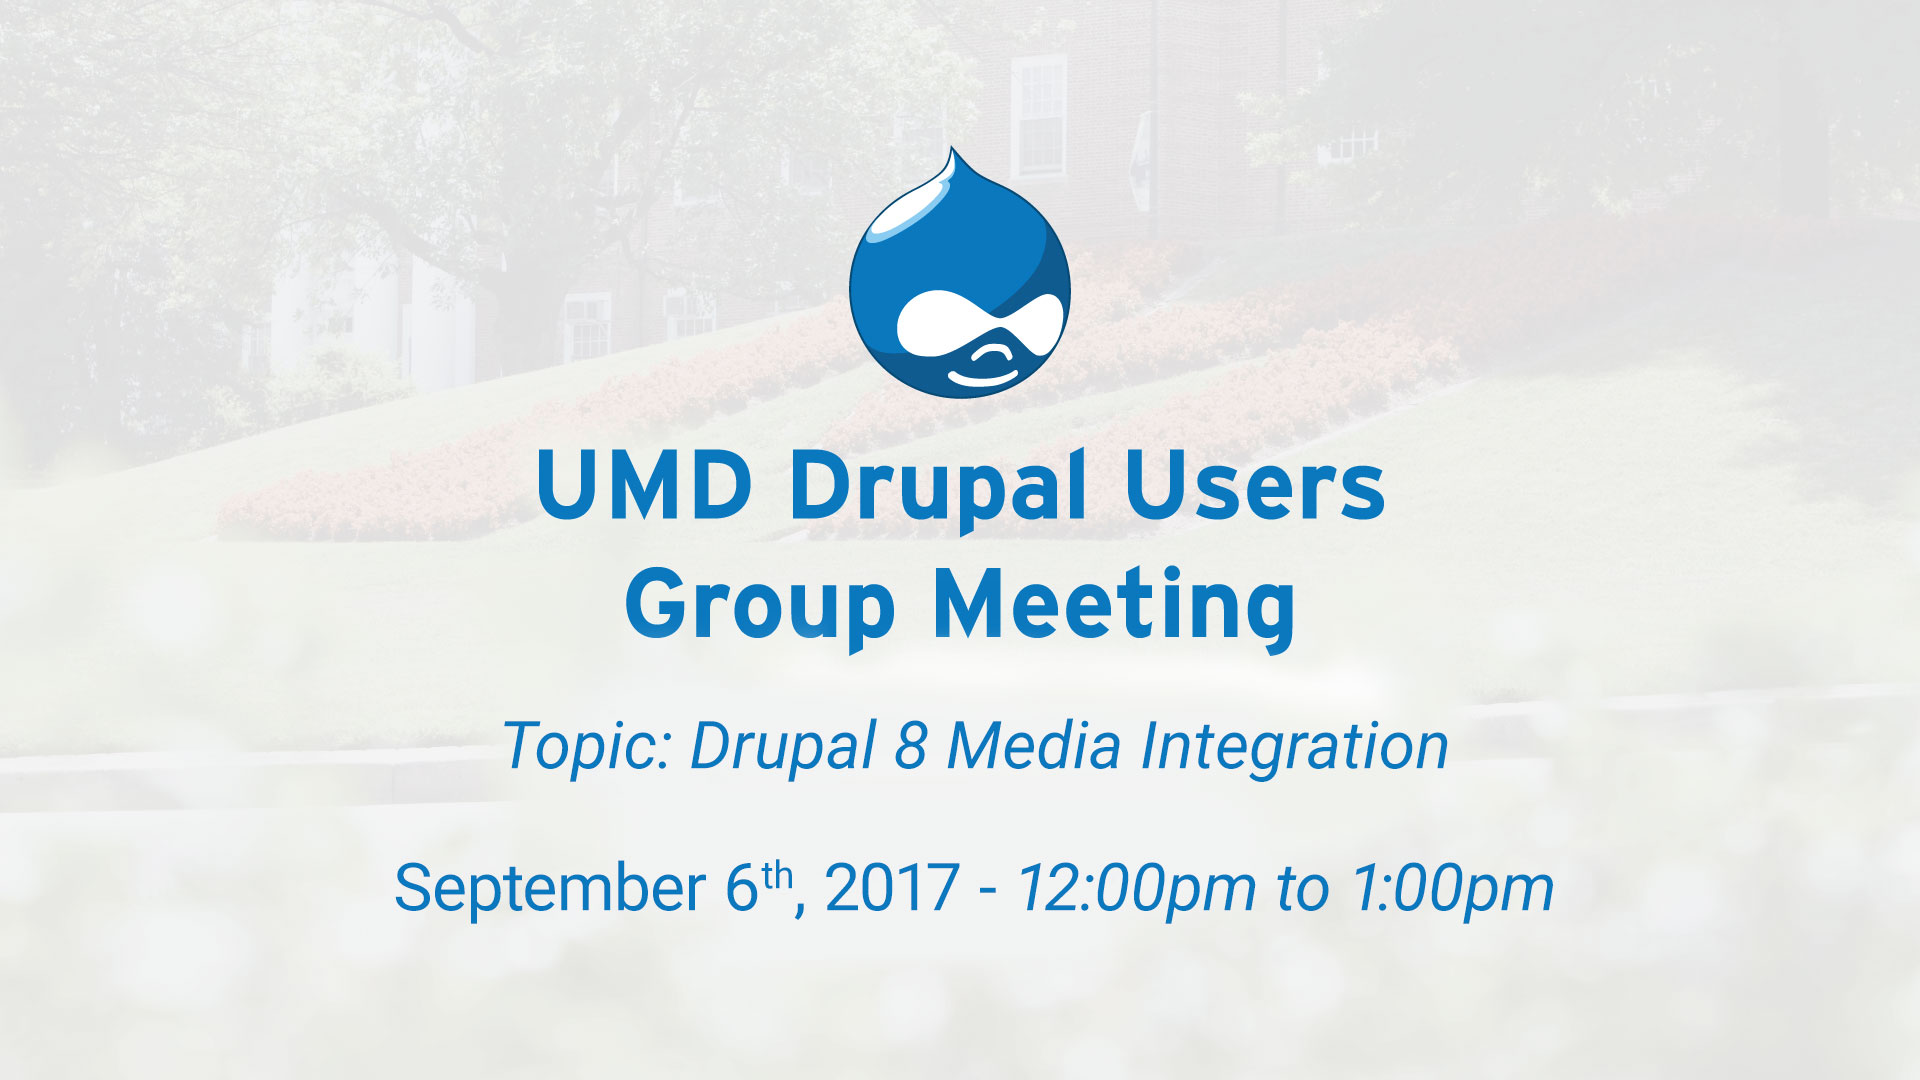 Drupal Users Meeting - Drupal 8 Media Integration